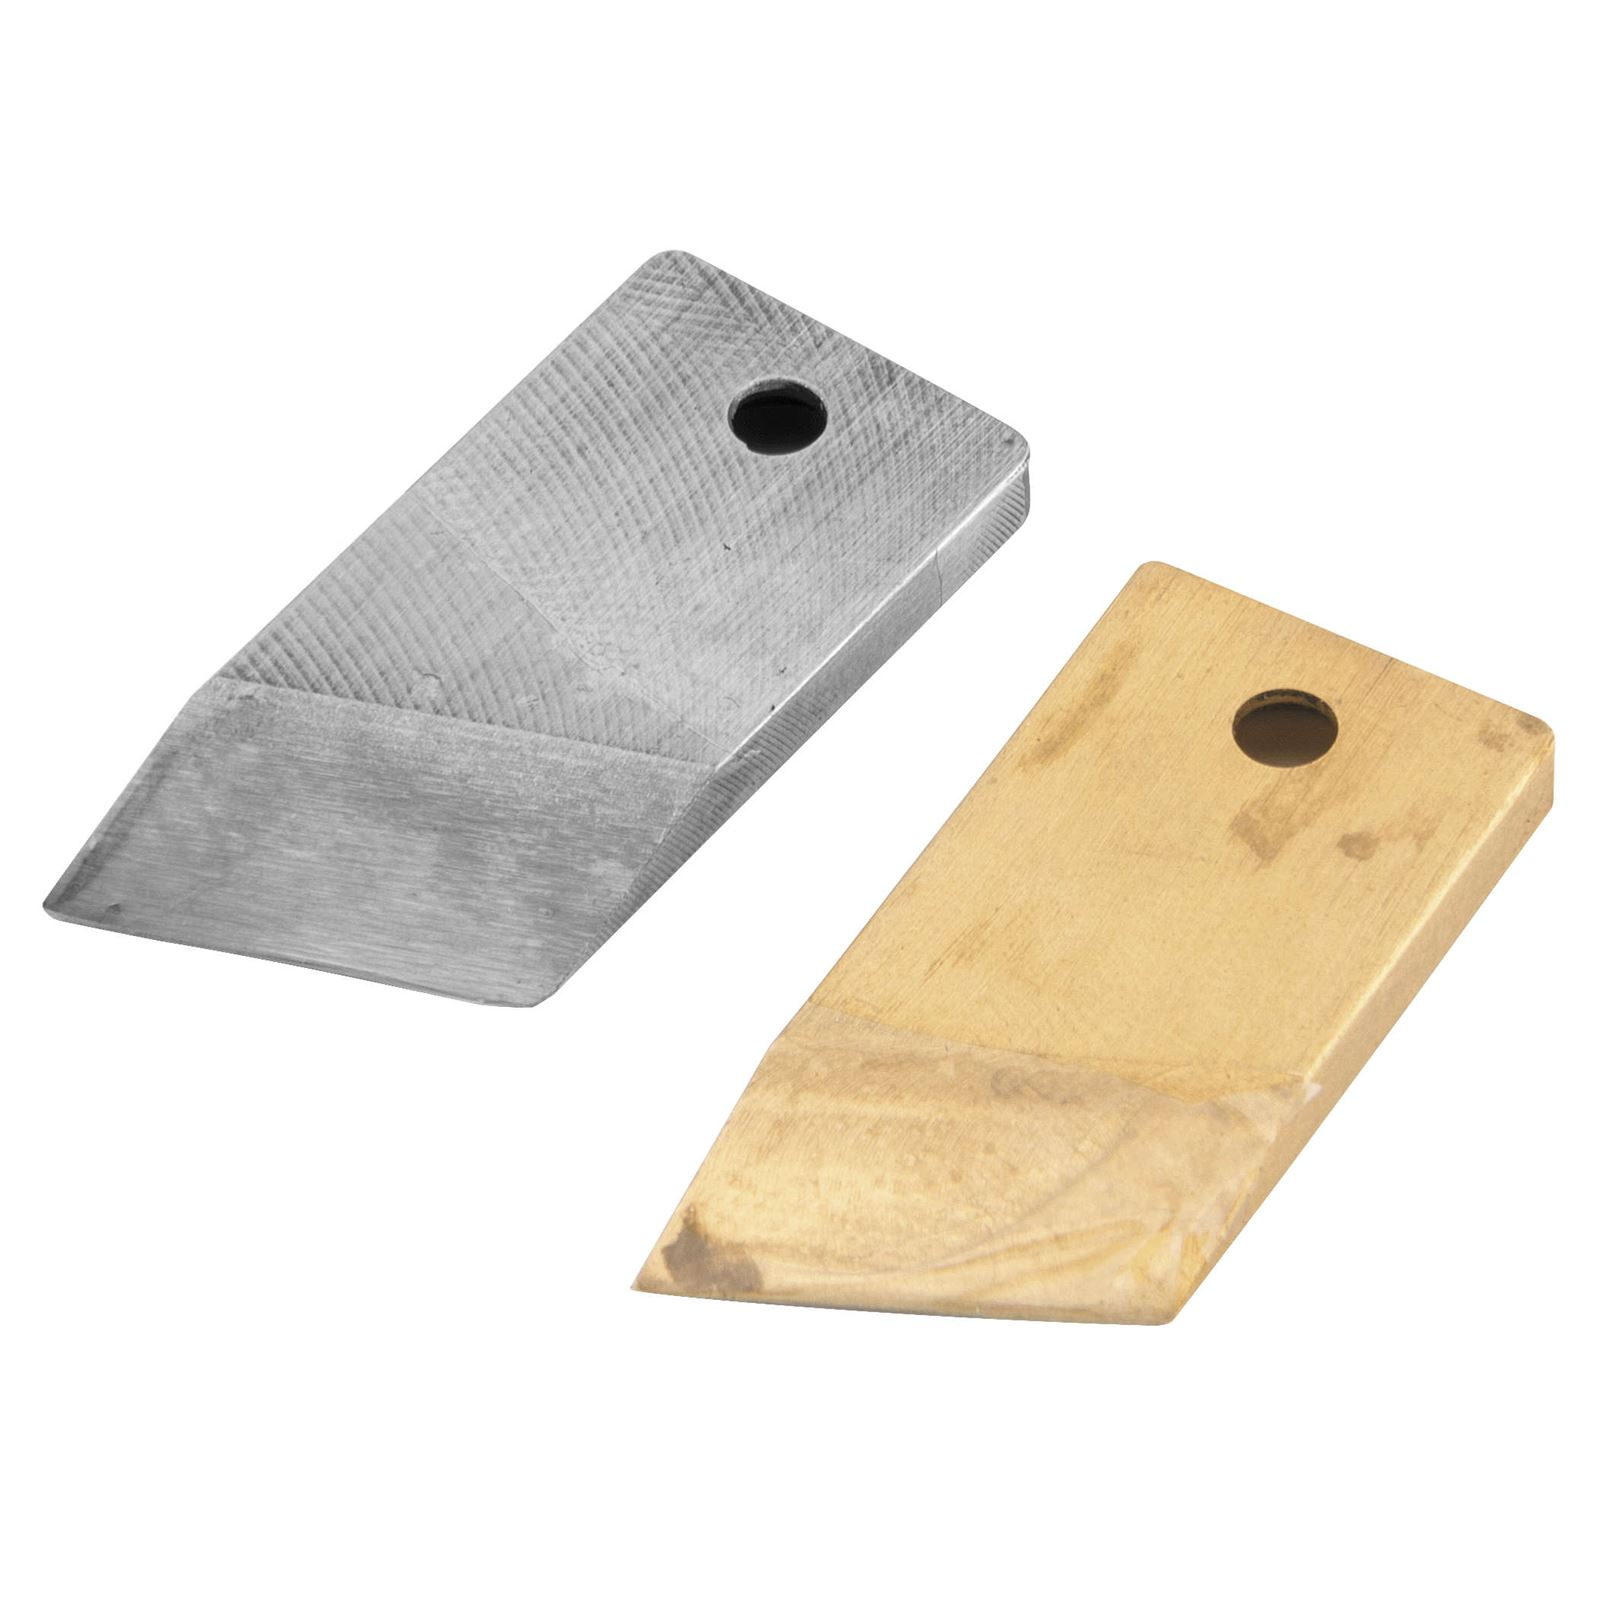 Motion Pro Tool Scraper Replacement Blades